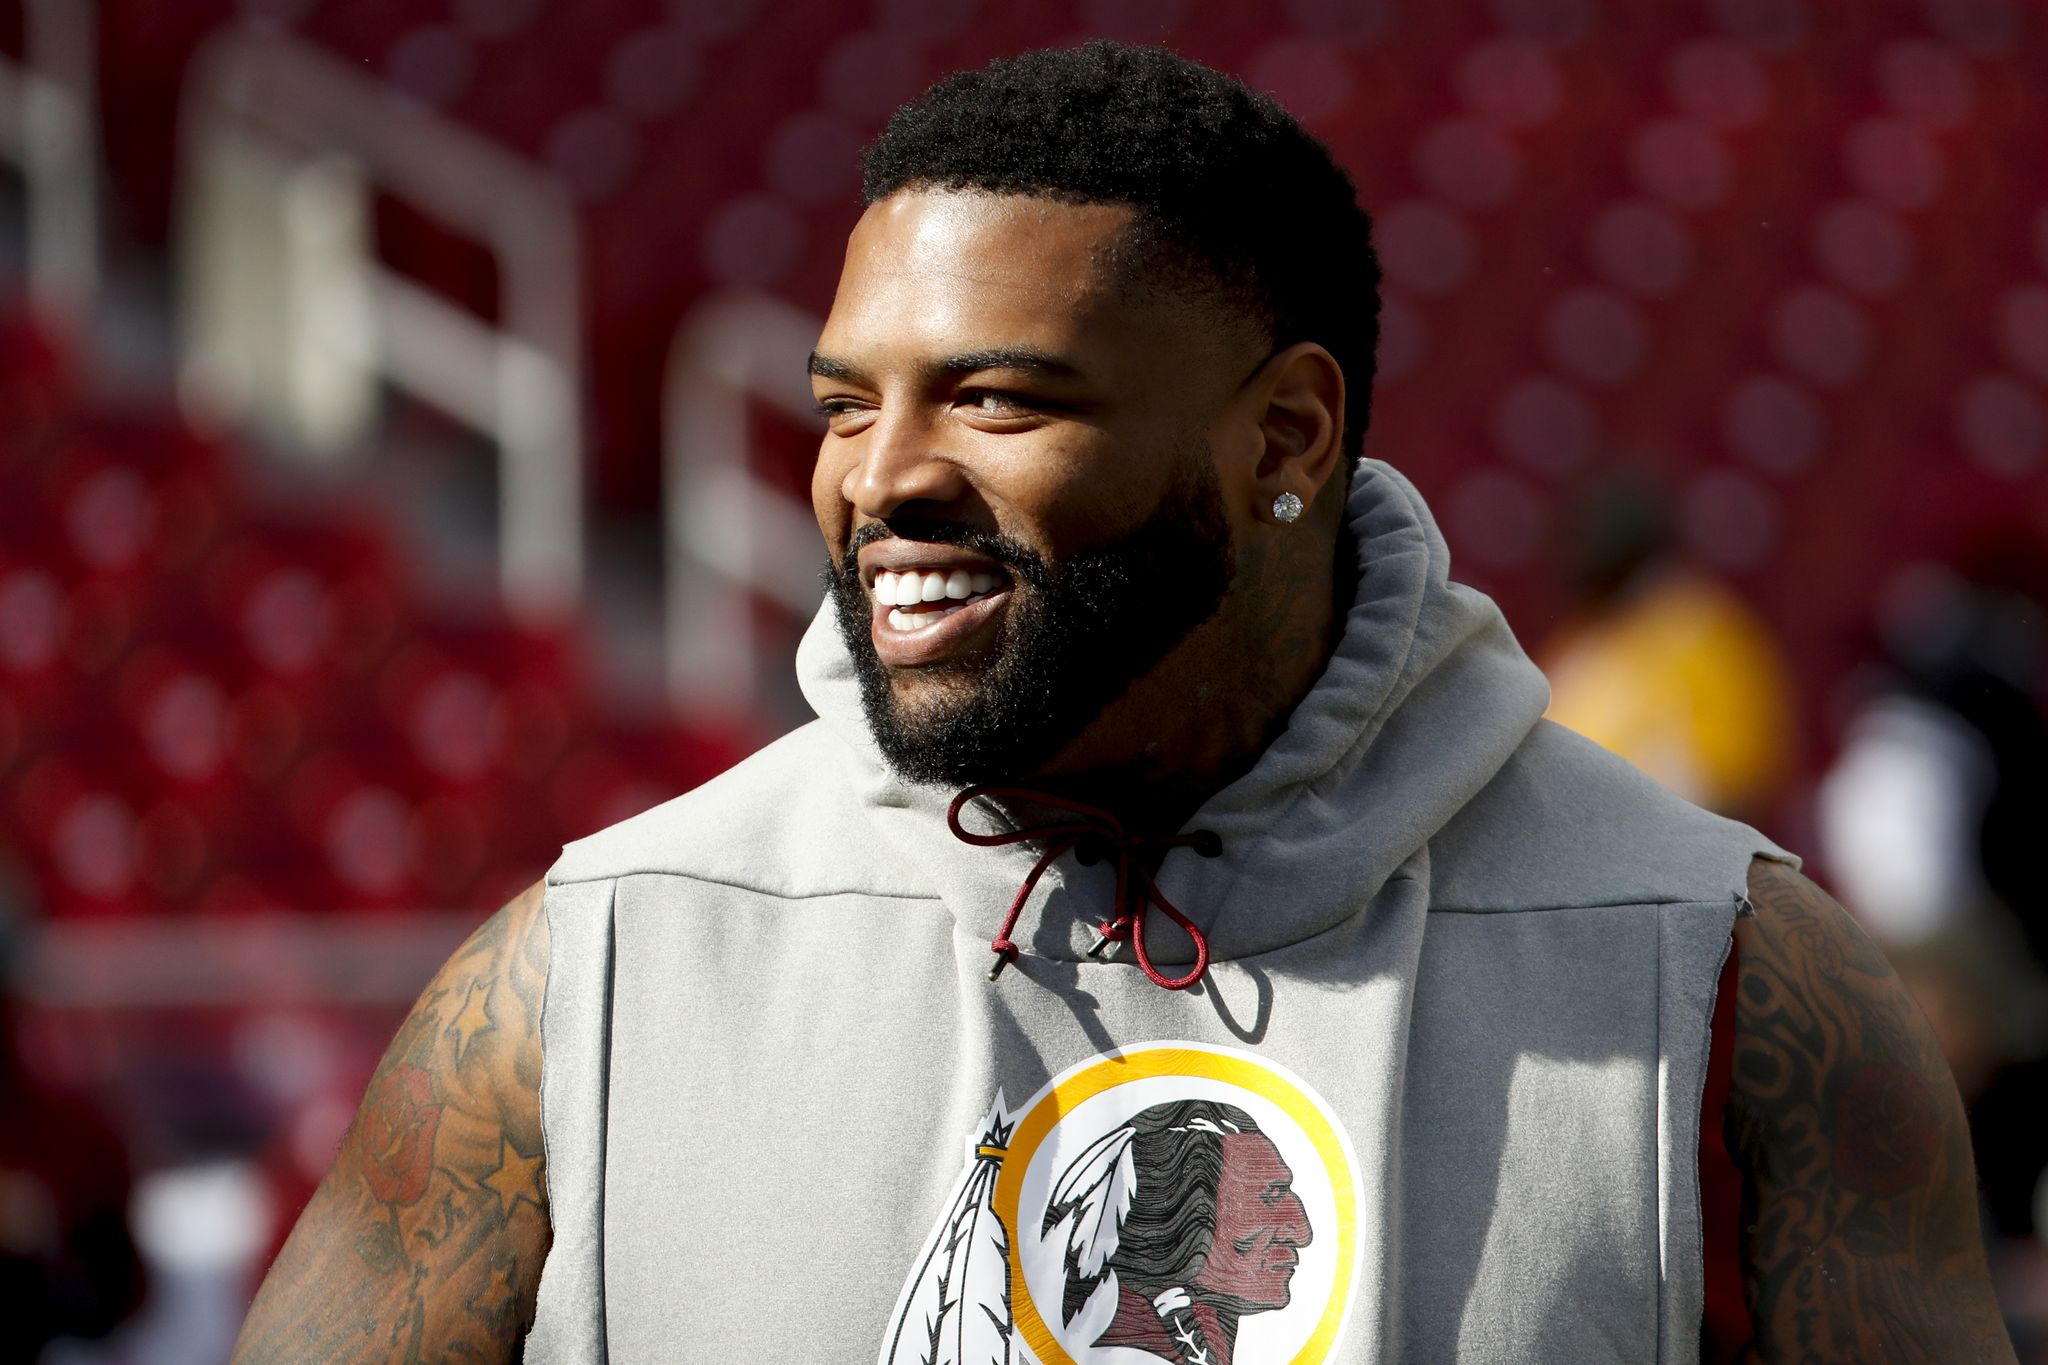 Trent Williams makes surprise return to practice, questionable vs. Texans